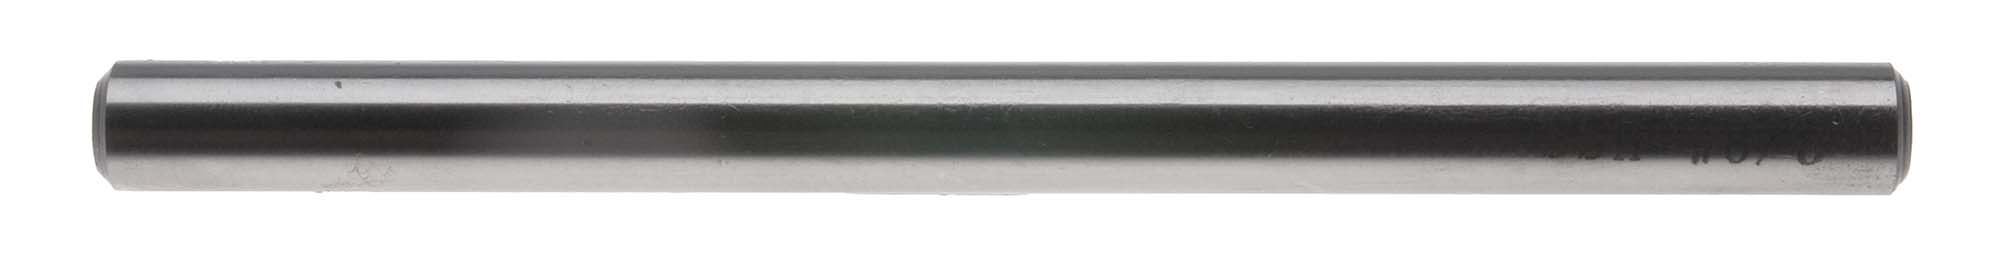 "13/64"" Jobber Length Drill Blank - High Speed Steel"